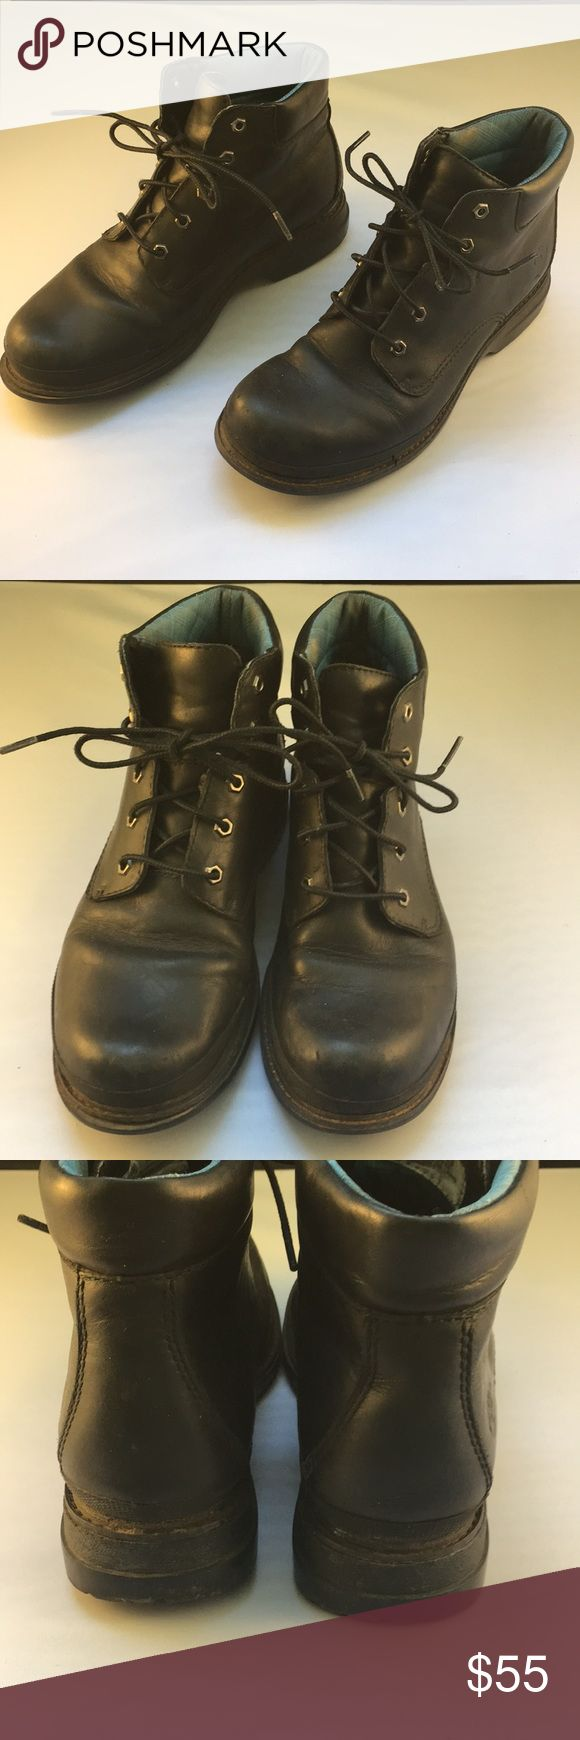 Timberland black leather sturdy boots. Sz 7 Black leather Timberland boots with  Blue fabric band around heel.  Gently used   Size 7 Timberland Shoes Ankle Boots & Booties